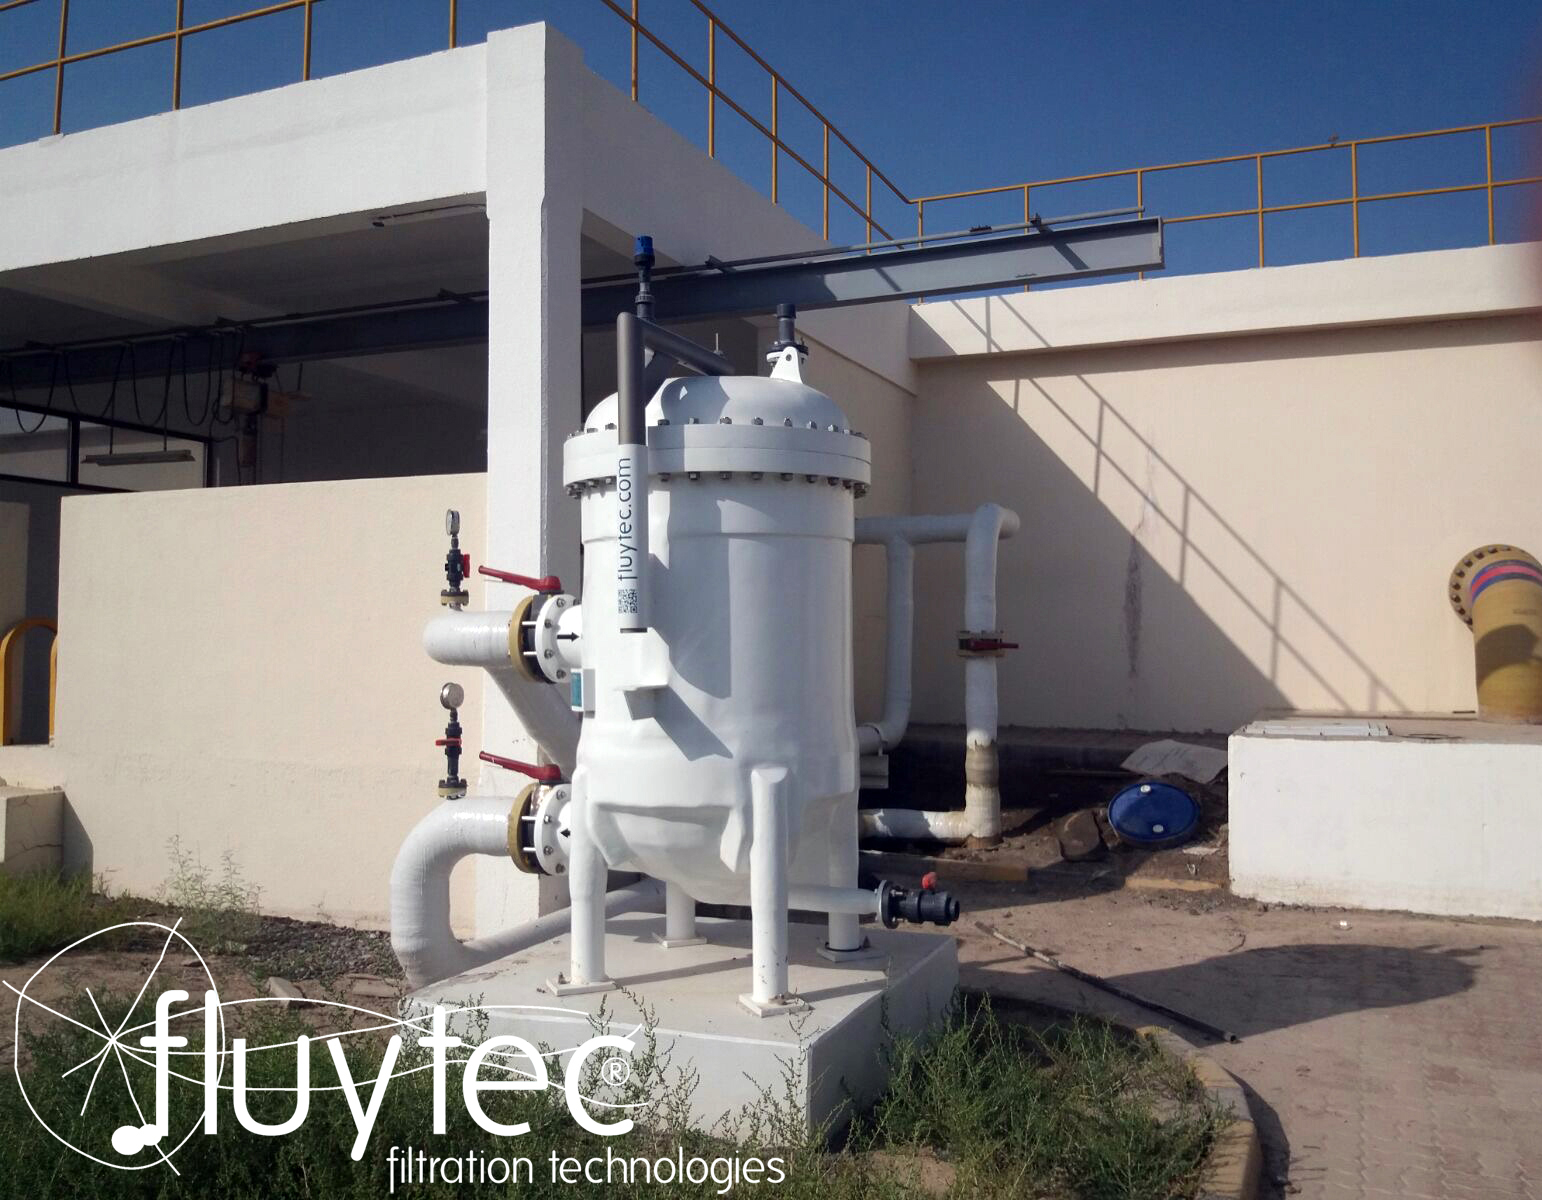 Fluytec FRP GRP Housing in OMAN